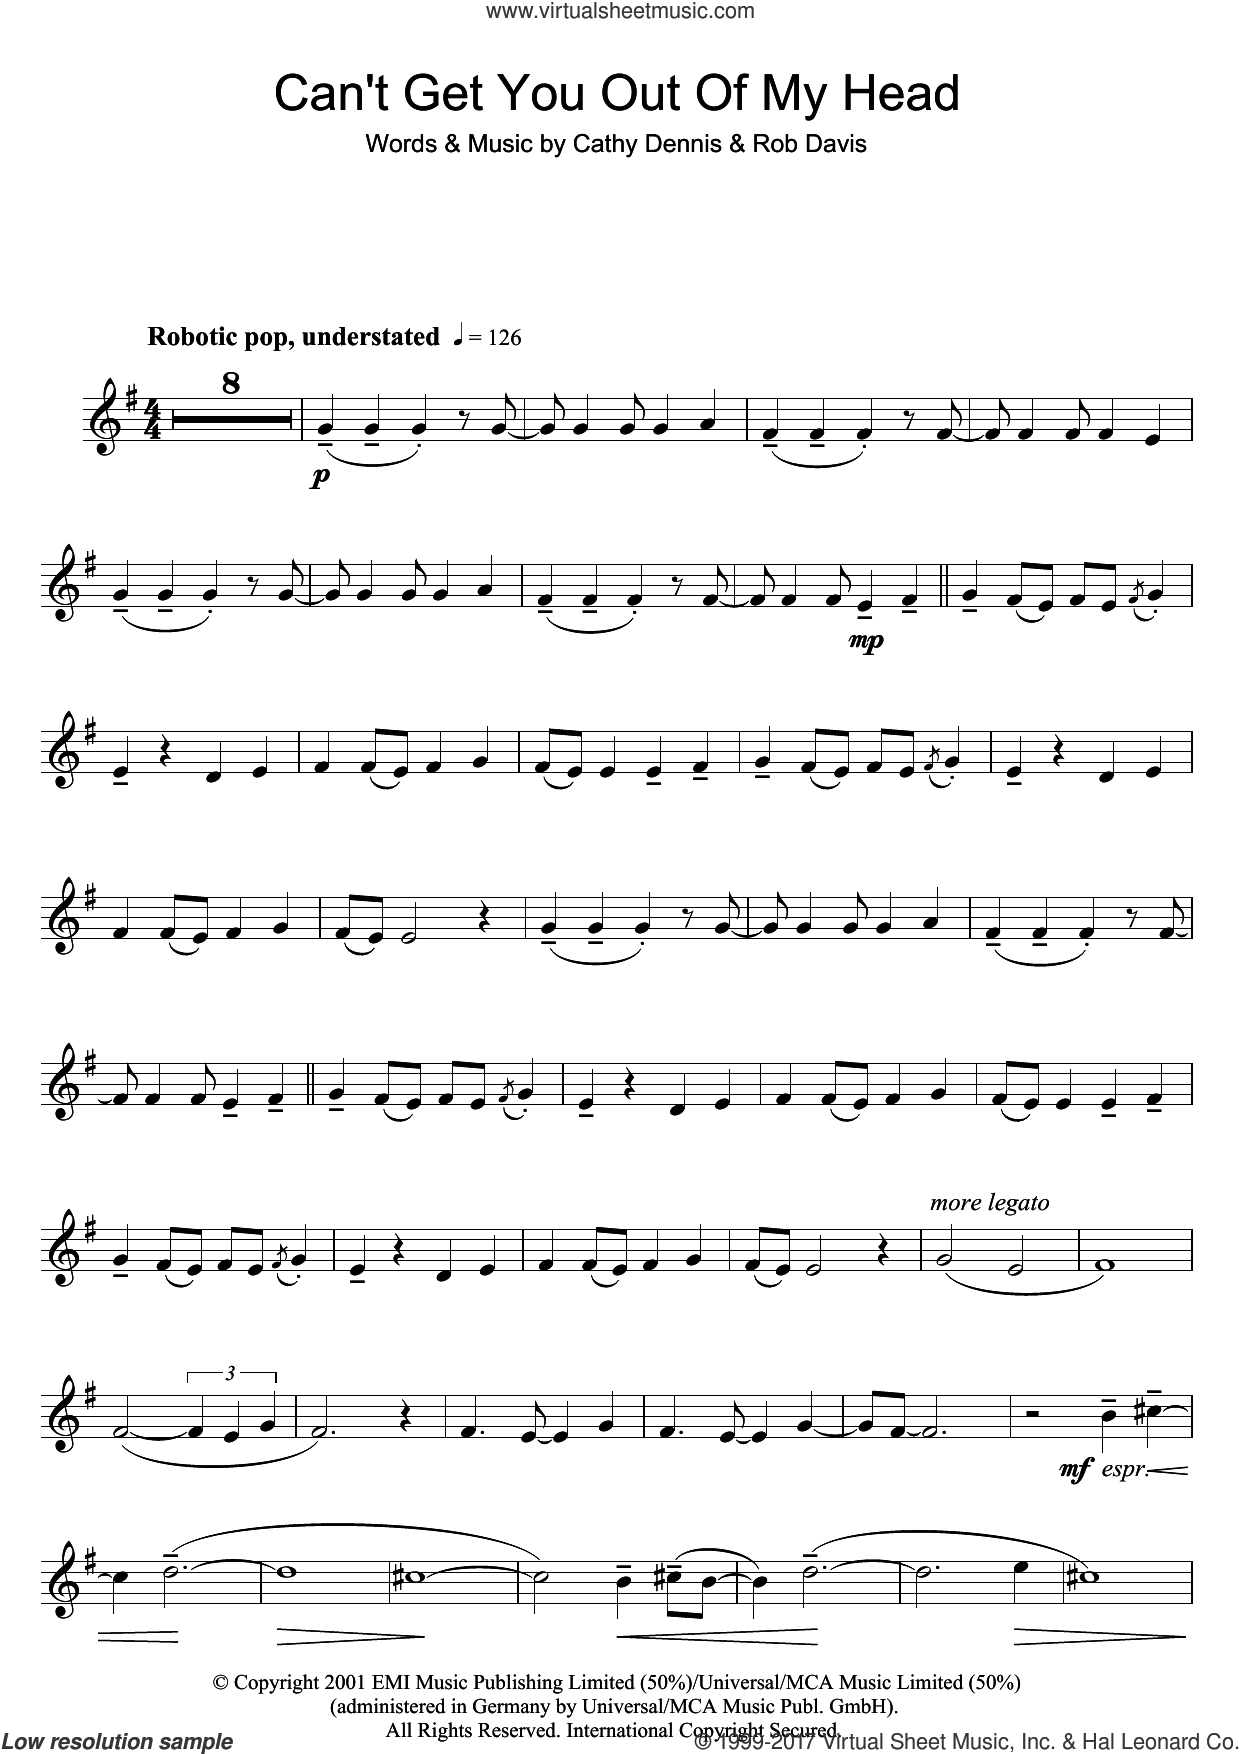 Can't Get You Out Of My Head sheet music for clarinet solo by Kylie Minogue, Cathy Dennis and Rob Davis, intermediate skill level